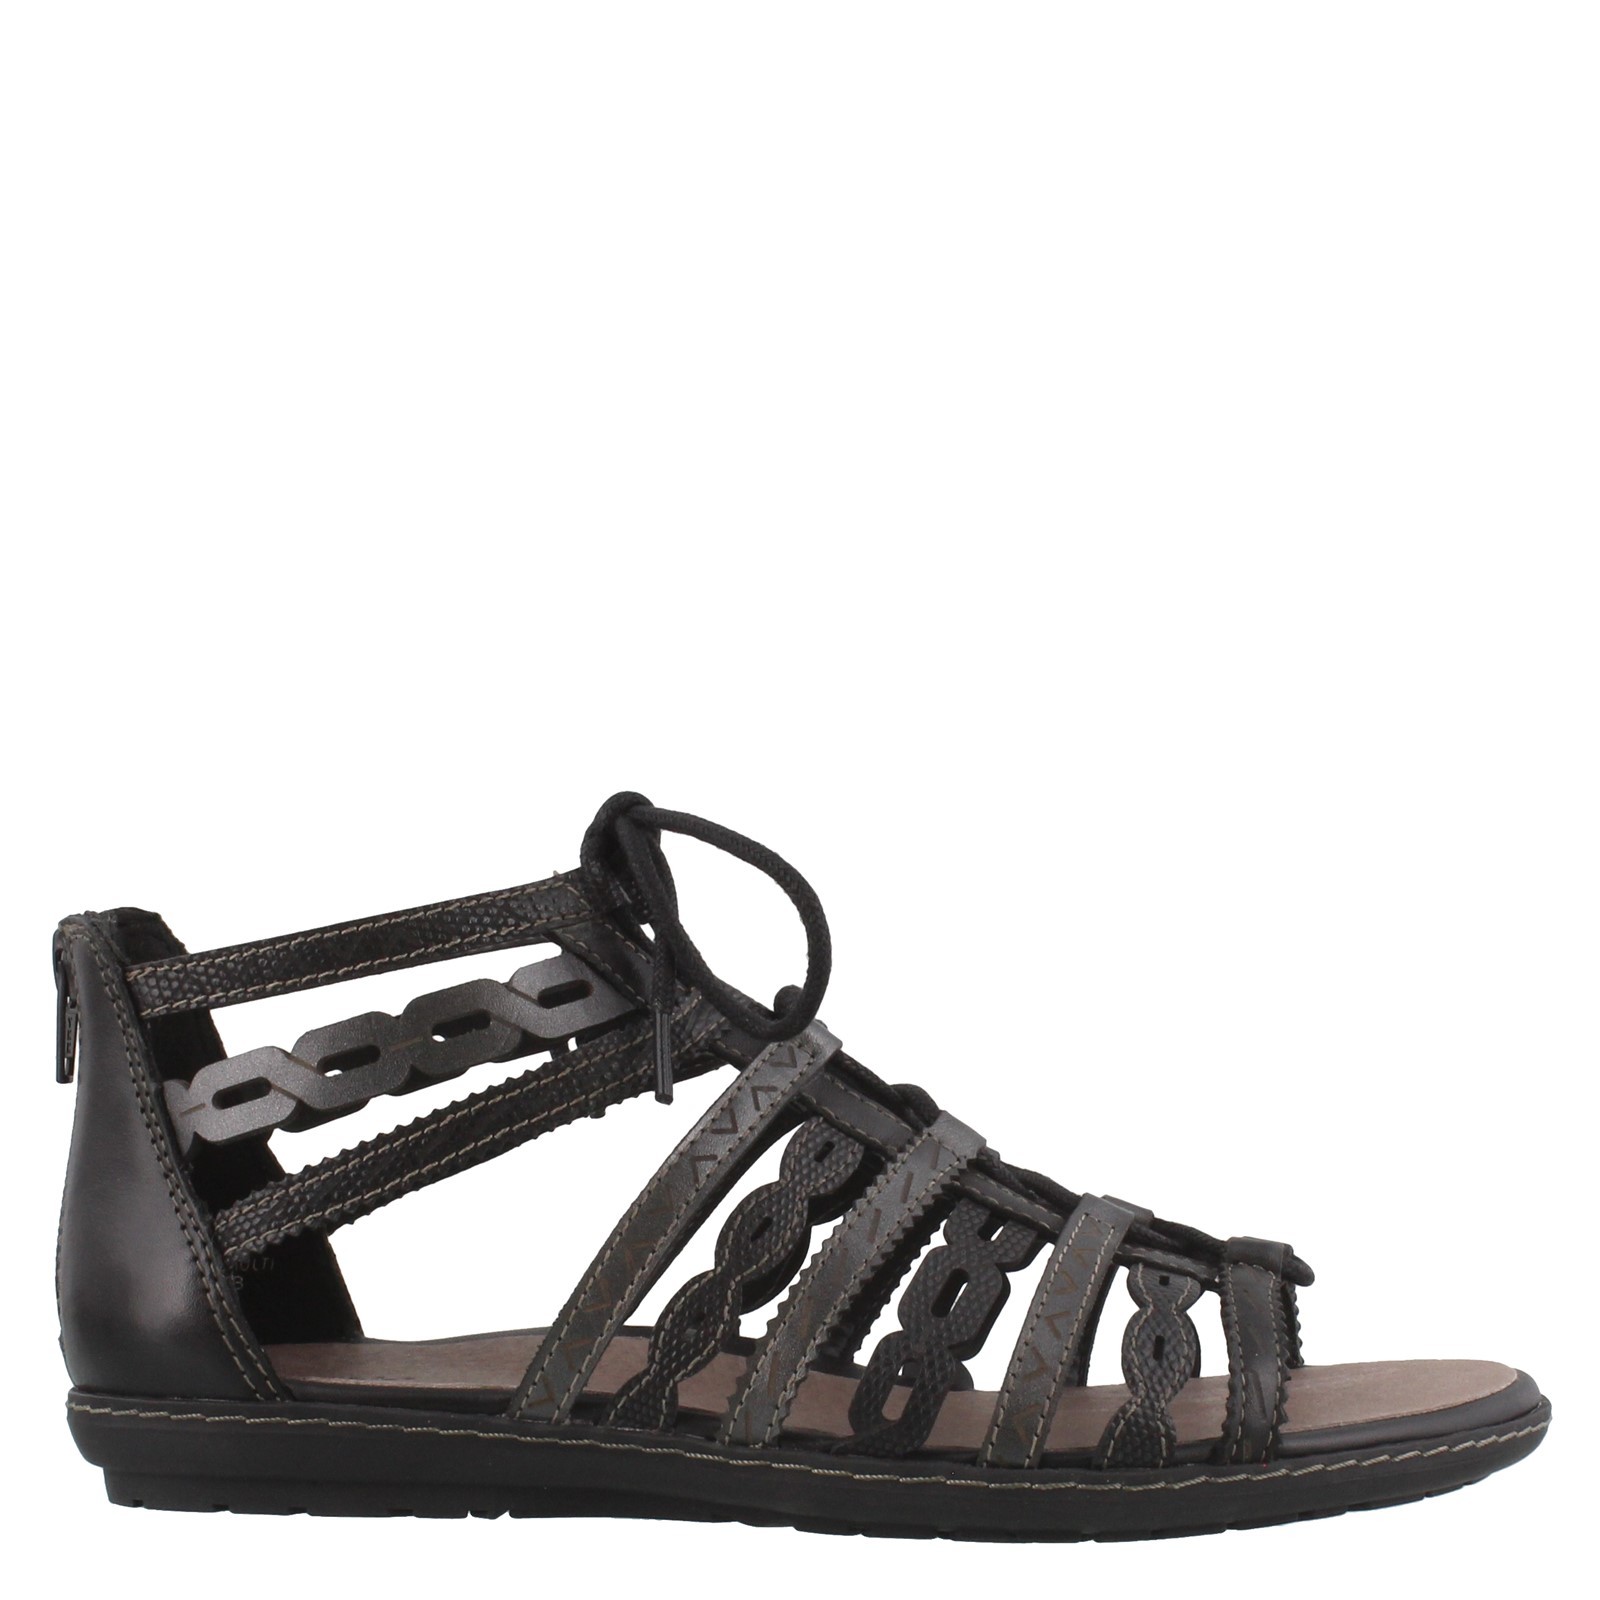 Women's EARTH, TIDAL STRAPPY LOW HEEL SANDALS